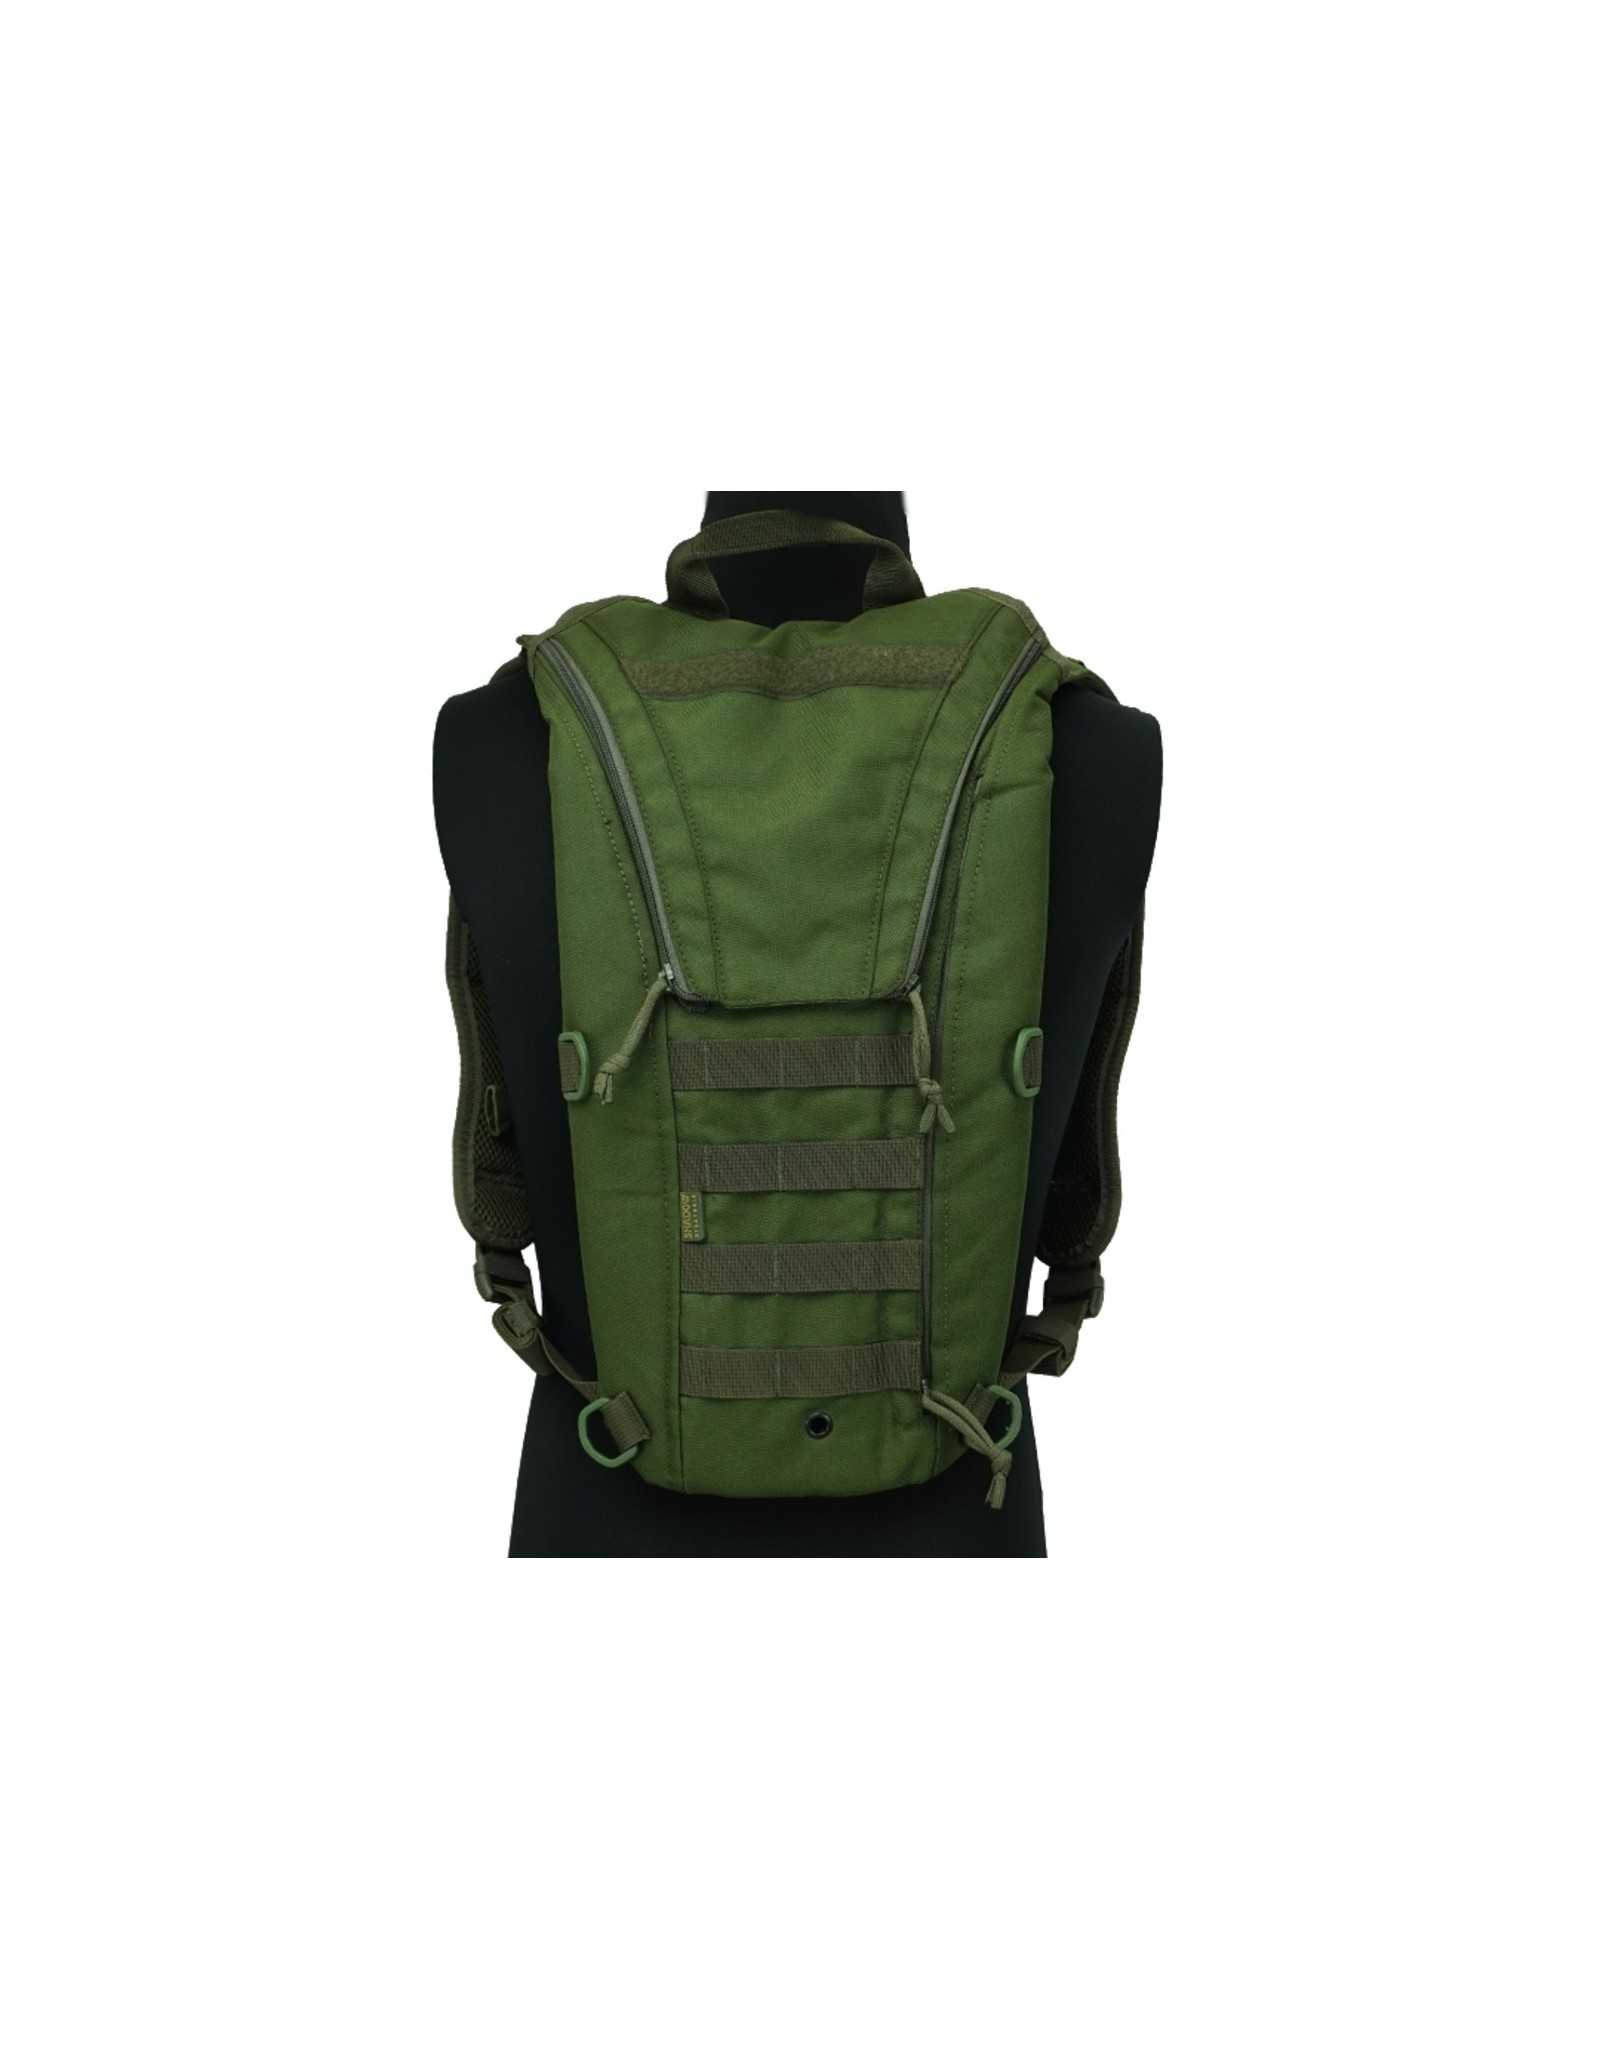 TRG HYDRO PACK